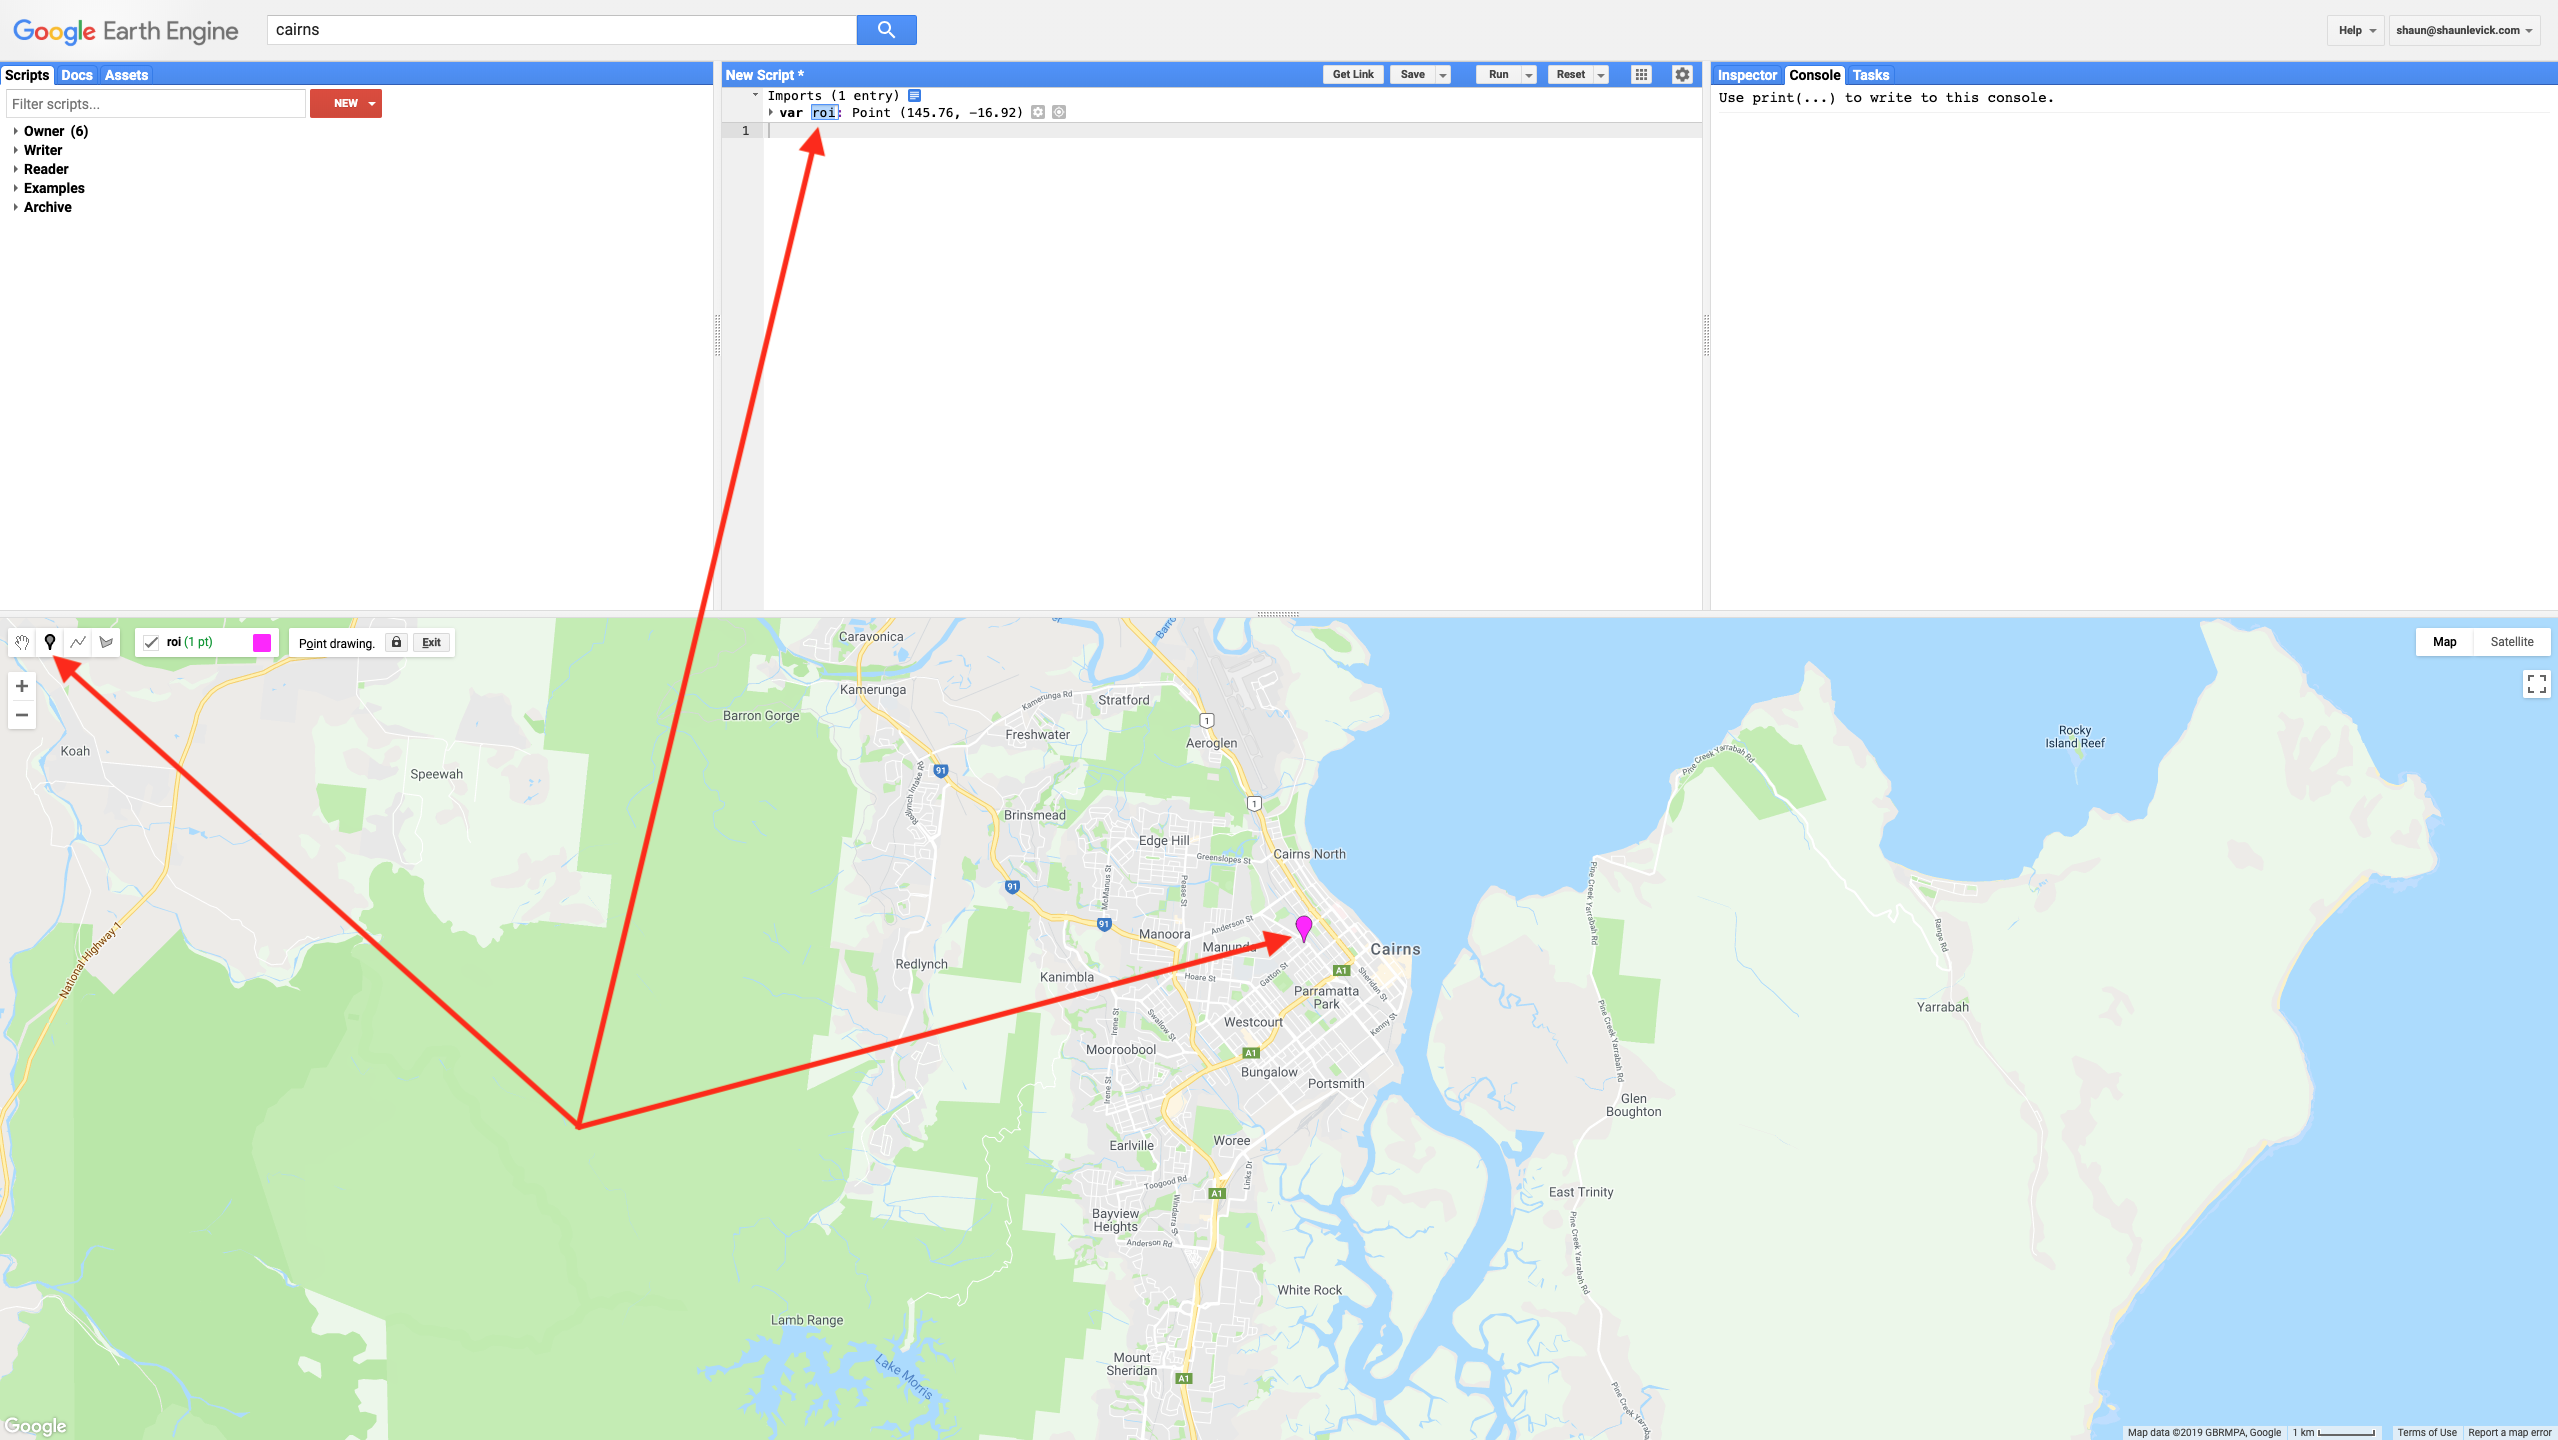 Figure 1. Navigating to Cairns